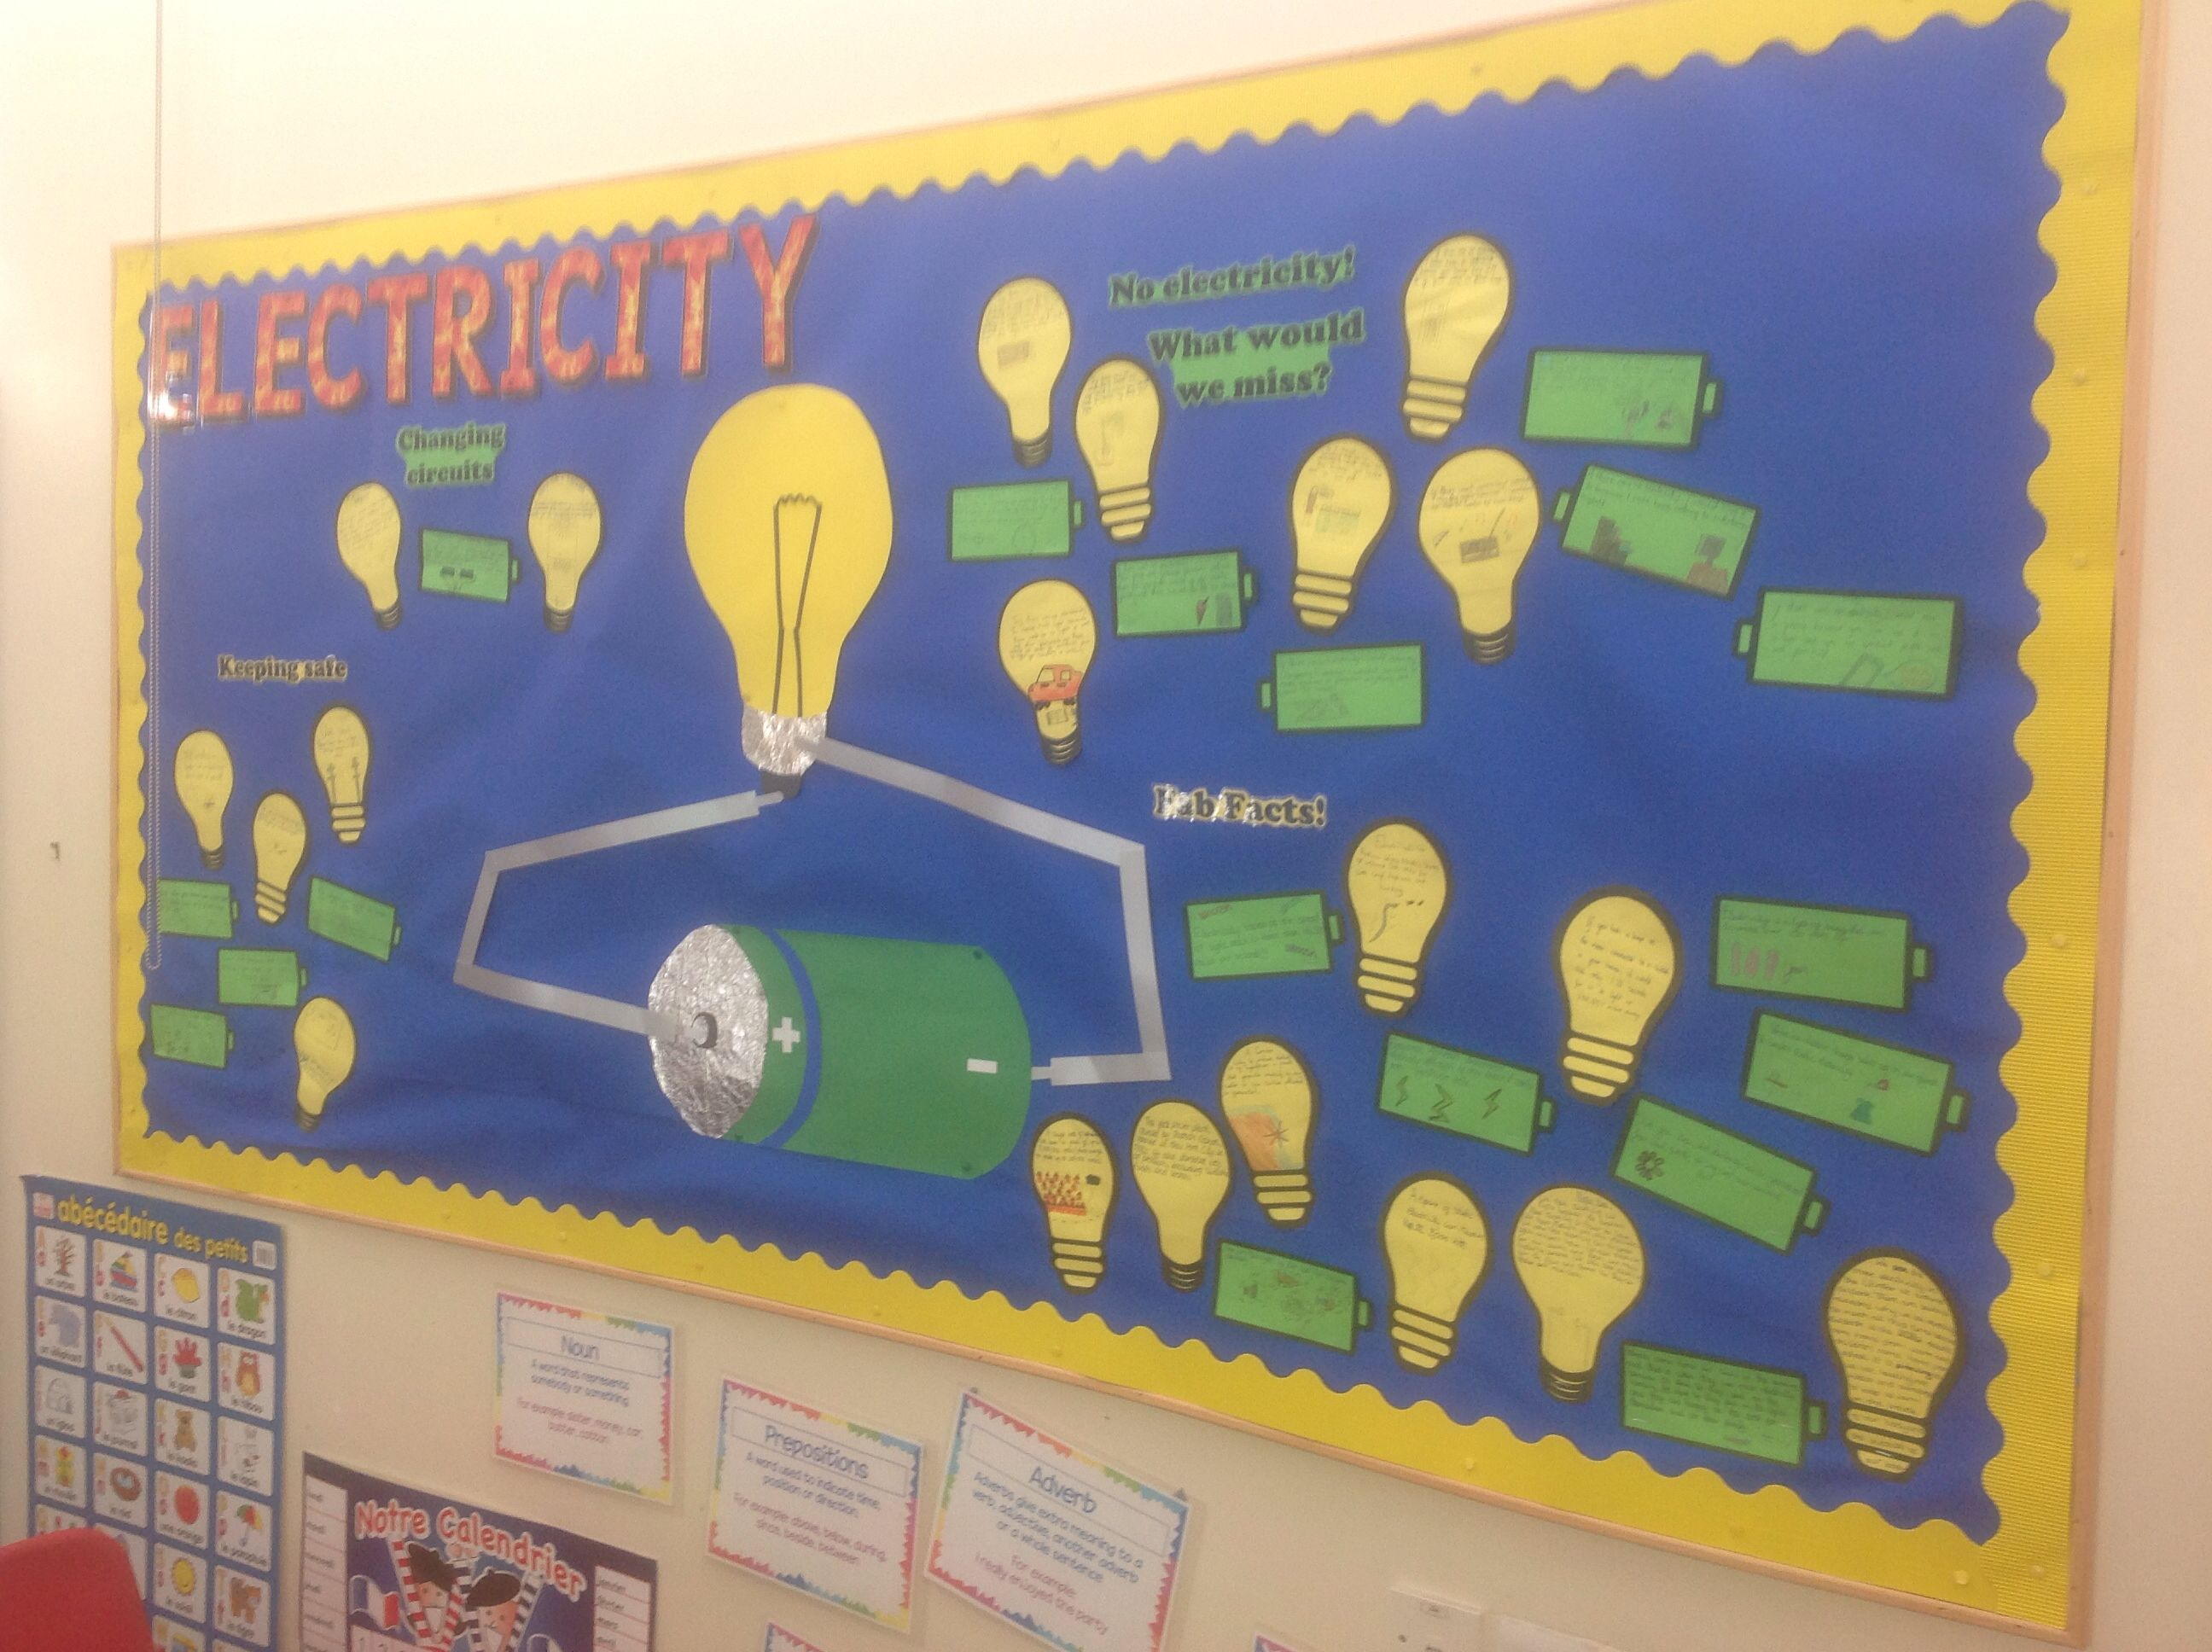 Science Classroom Decorations For Primary ~ Electricity display school stuff pinterest